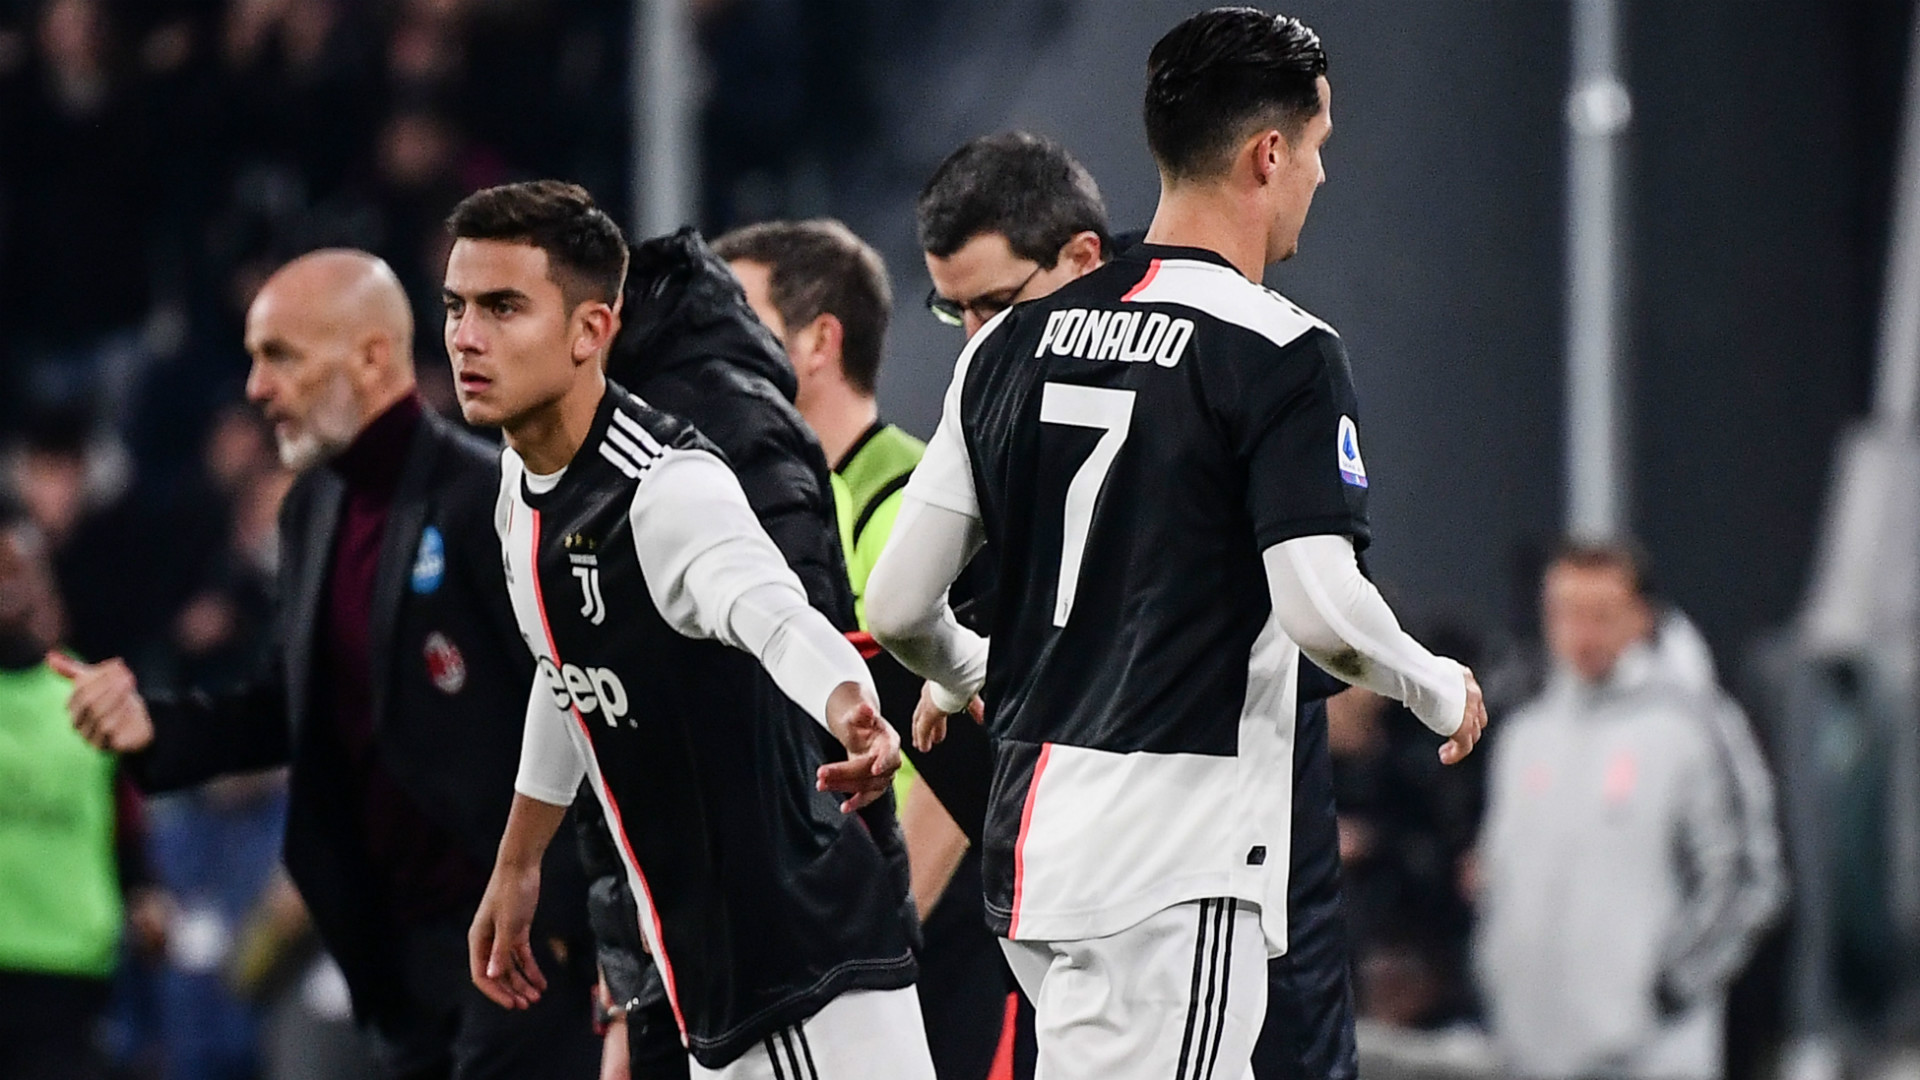 Ronaldo tension with Sarri is 'nothing unusual' after Juventus star's anger at being subbed, says Mancini